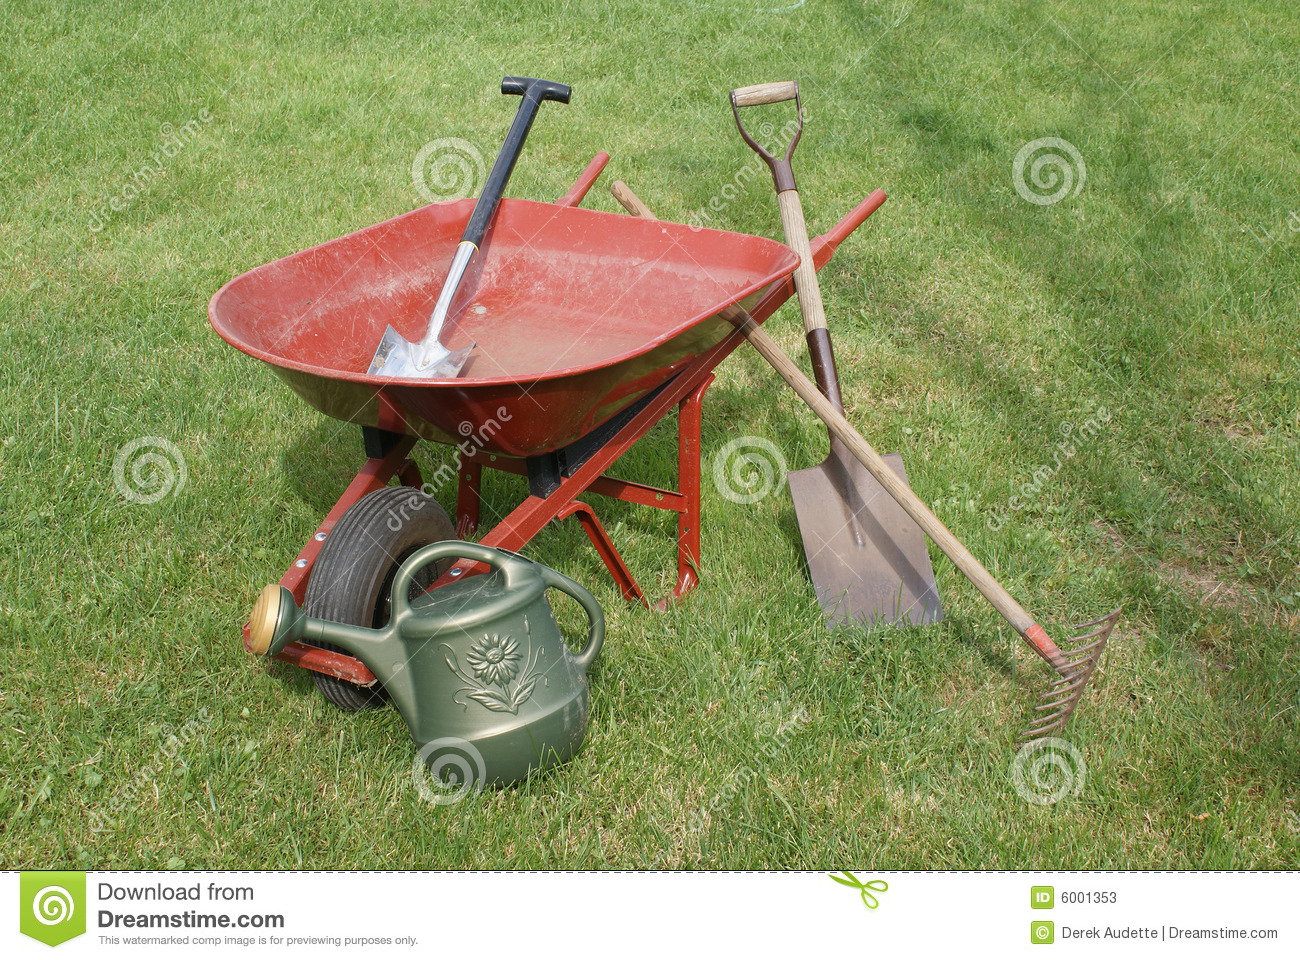 Gardening tools and equipment stock image image 6001353 for Garden implements tools